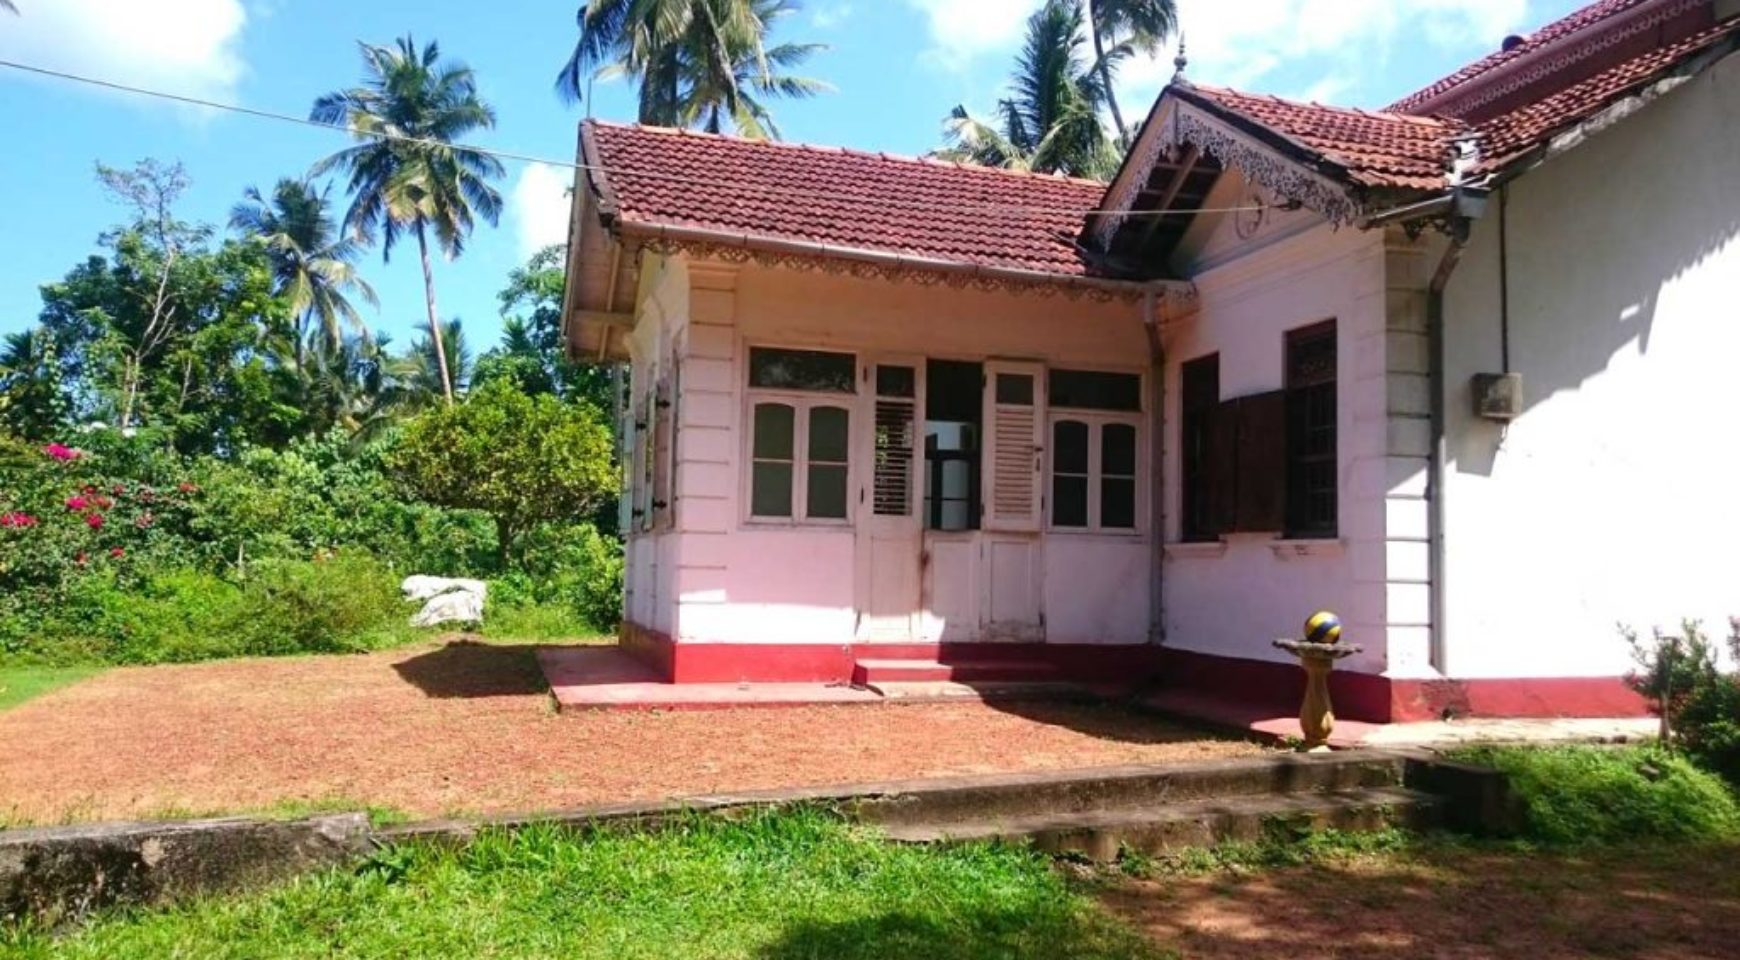 Modern Colonial Homes Beautiful Homes With Colonial Still Intact